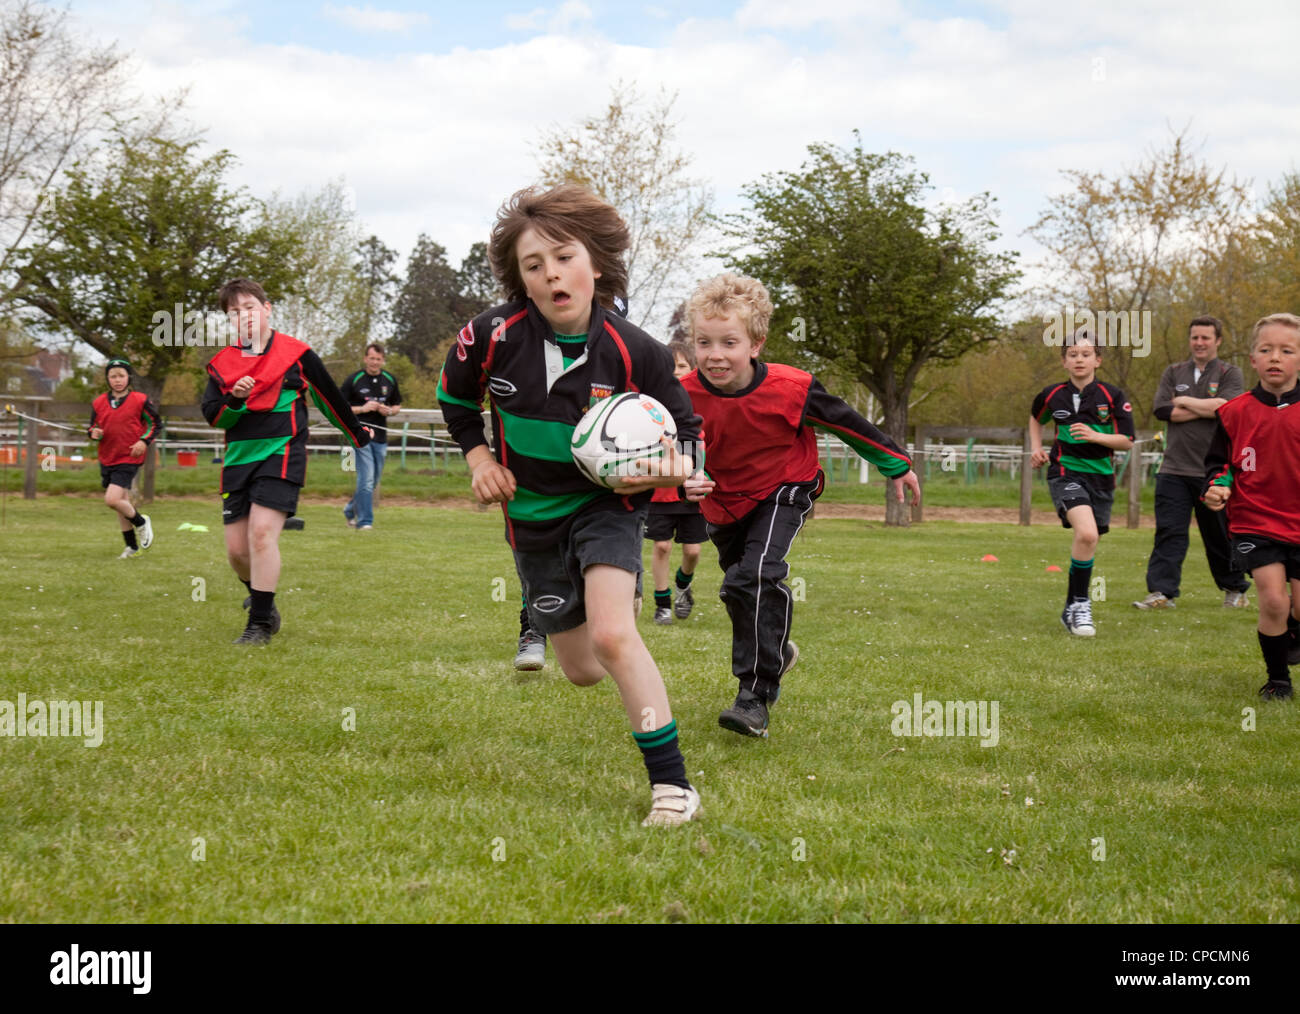 Junior boys rugby match, Newmarket Suffolk UK - Stock Image